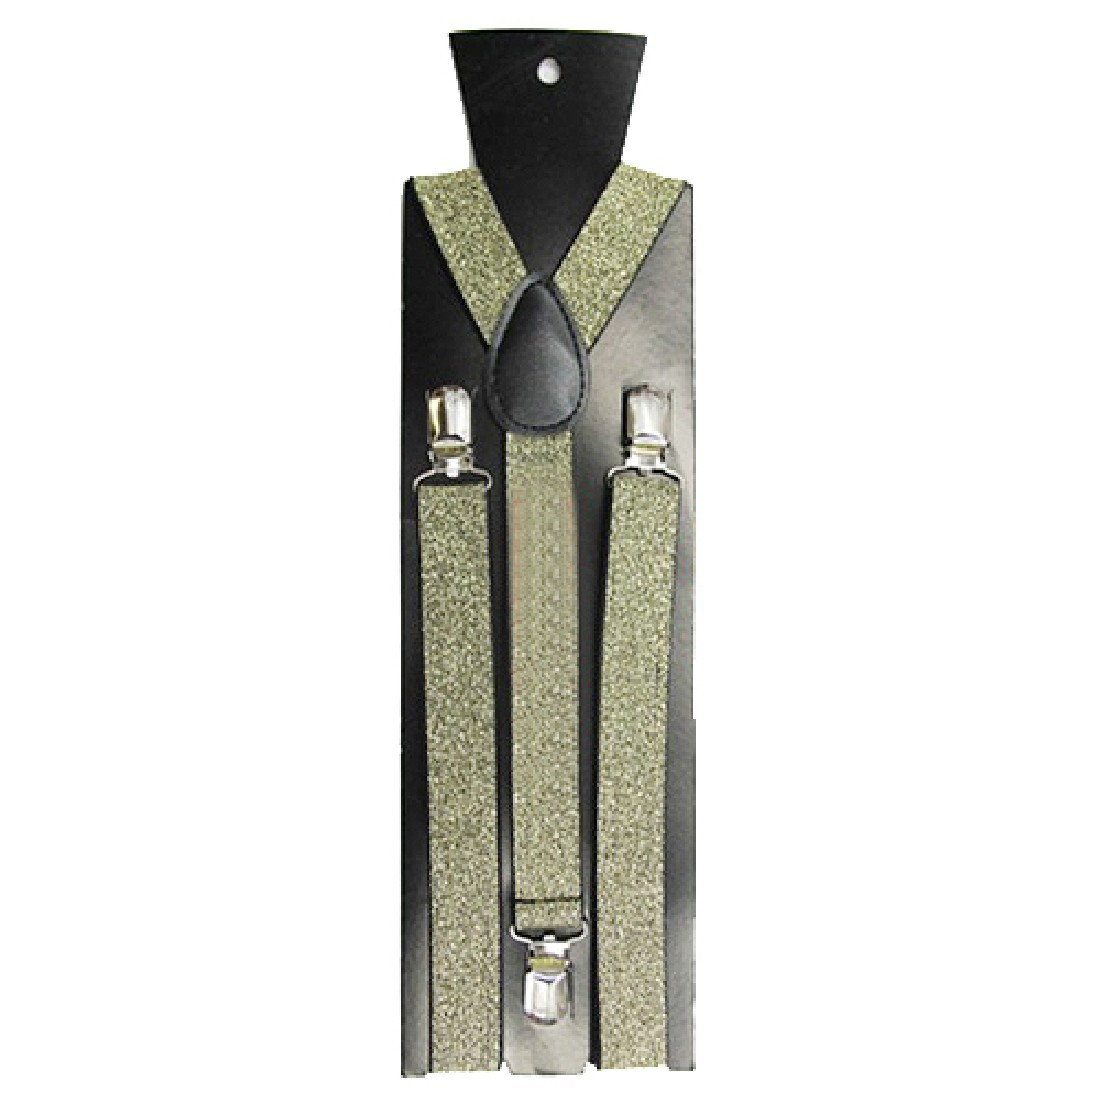 Unisex Clip-on New Mens Womens  Suspenders Elastic Y-Shape Adjustable Strap Dress Accessories Strap Apparel Hot